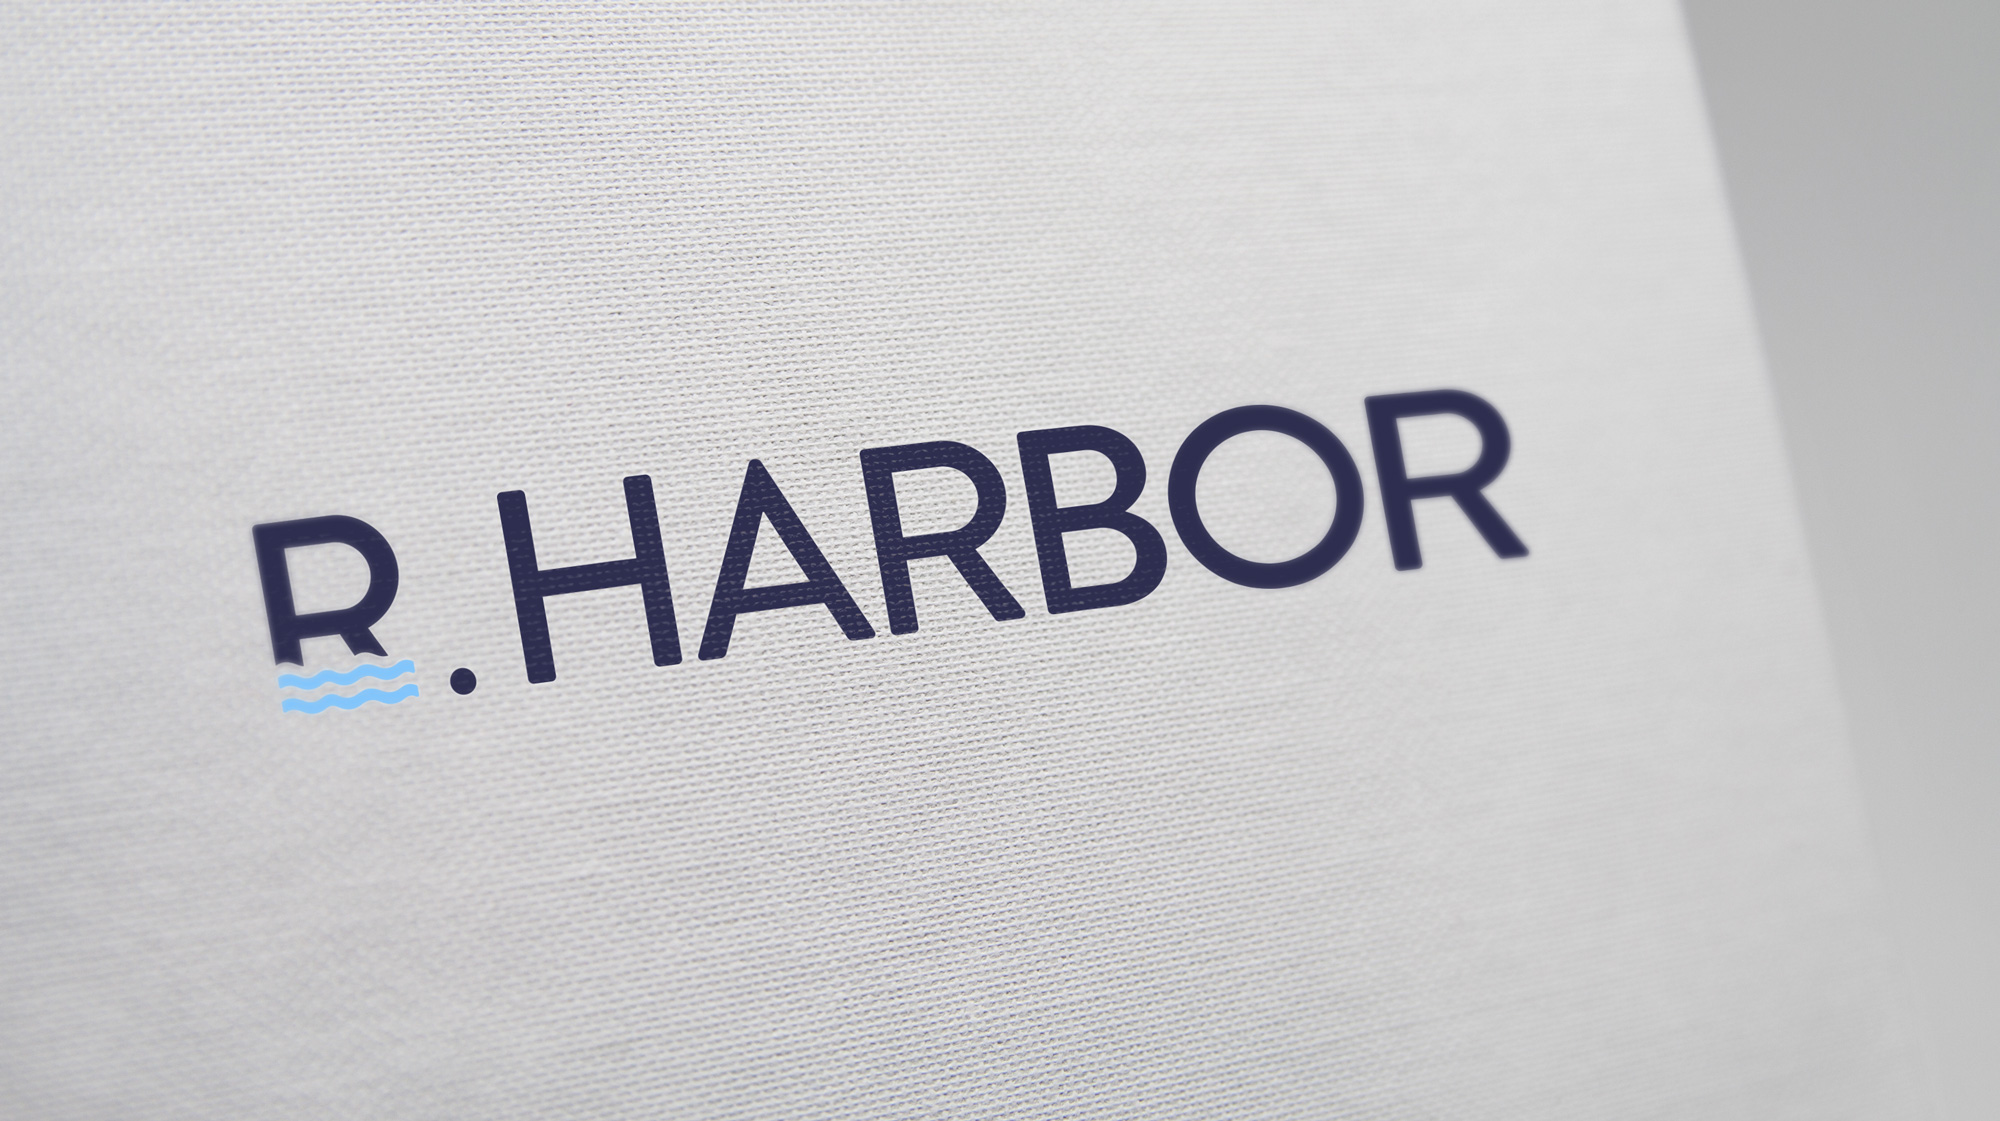 R.HARBOR - Logo